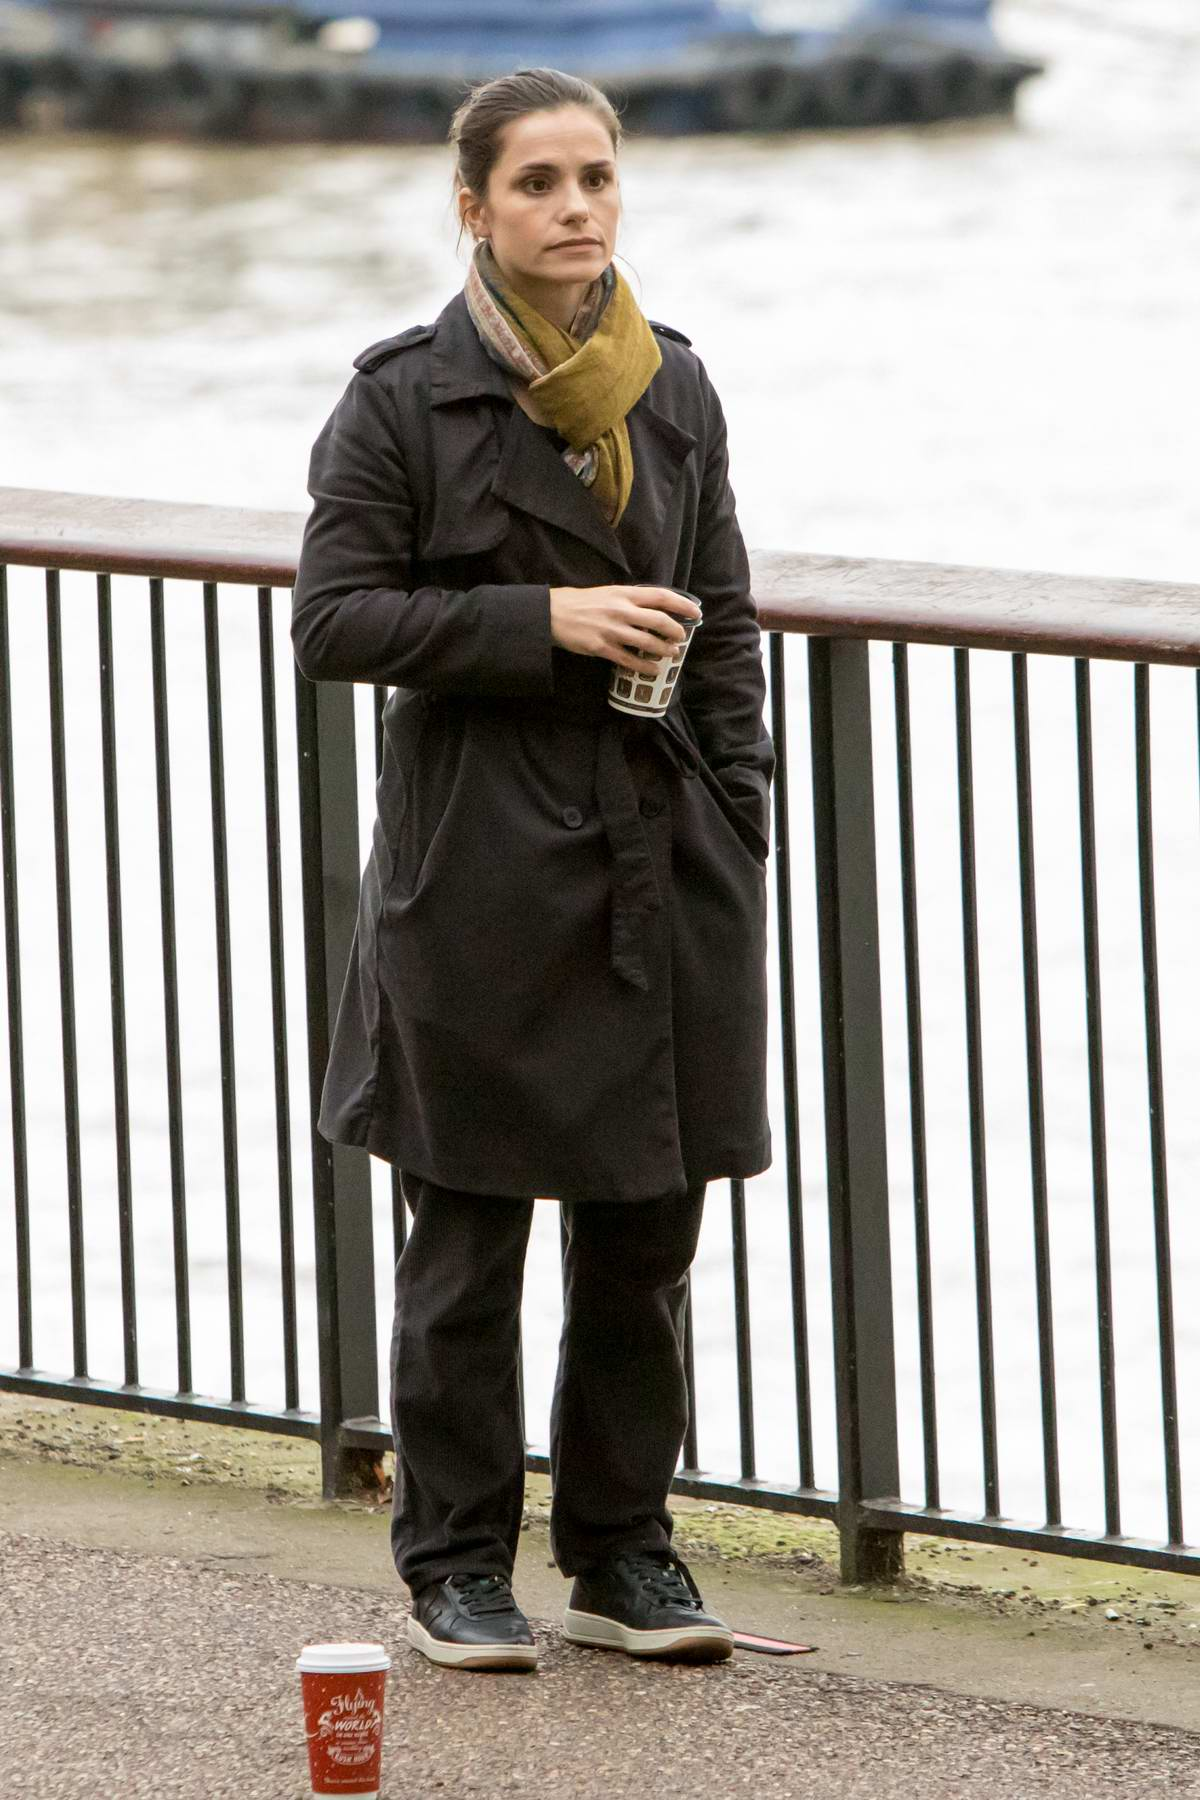 Charlotte Riley is spotted filming scenes for upcoming drama 'Press' on the banks of the Thames in London